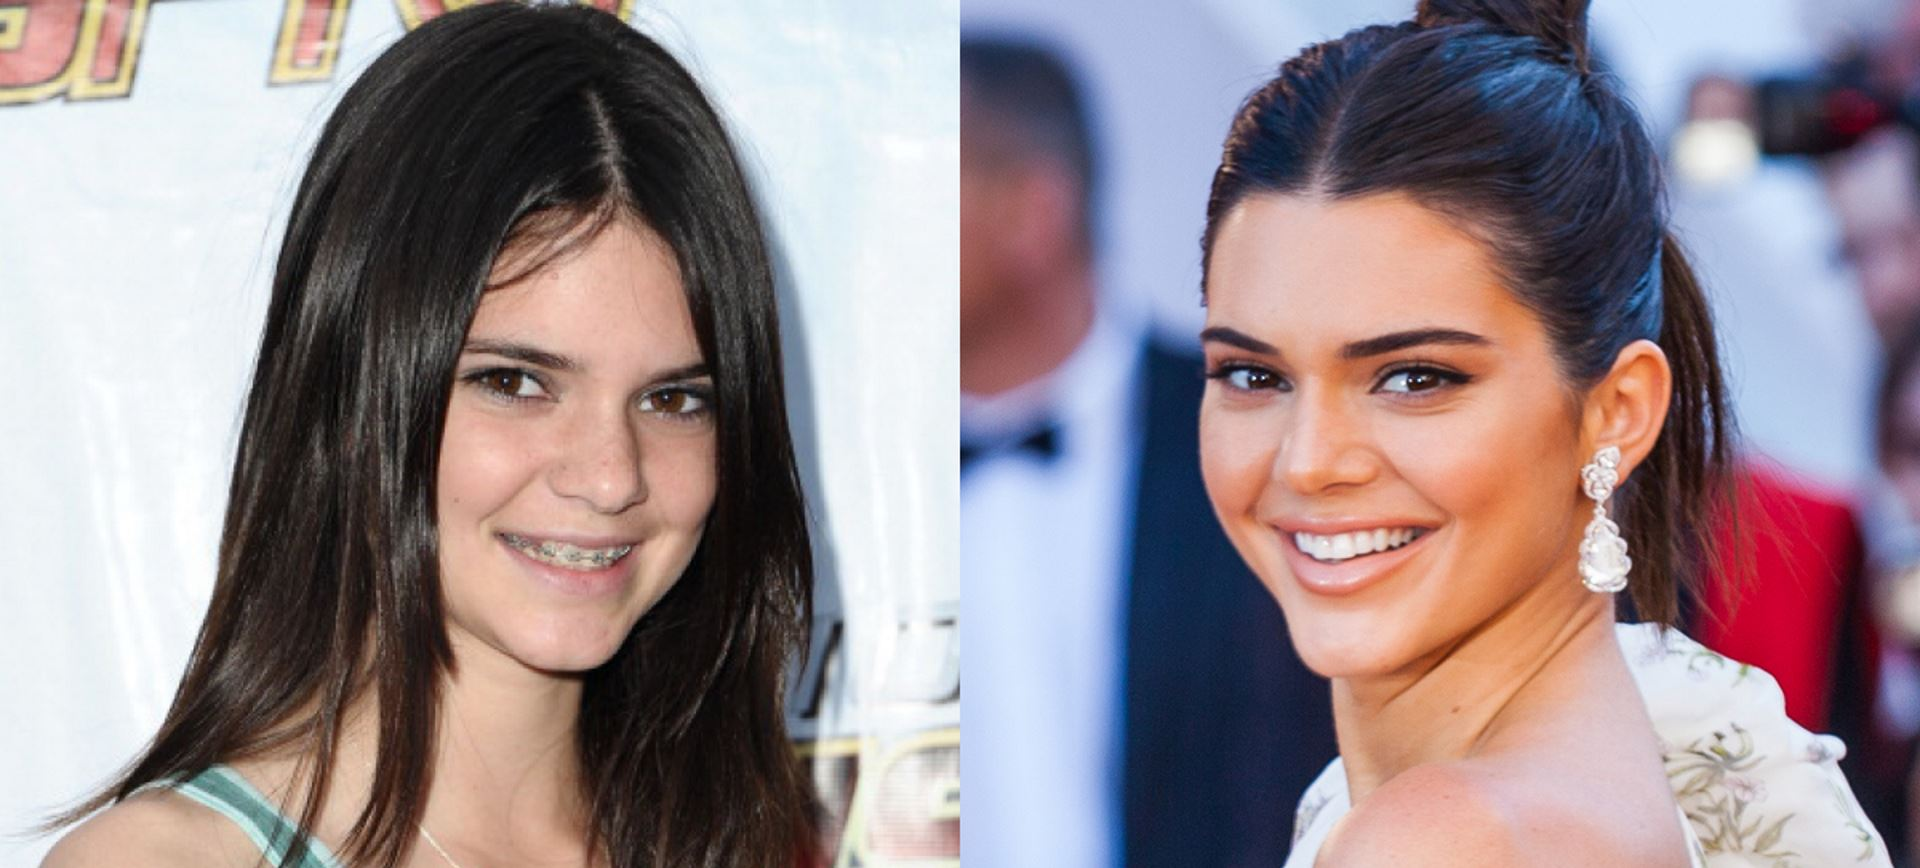 Dental Braces Before and After Pictures in Atlanta